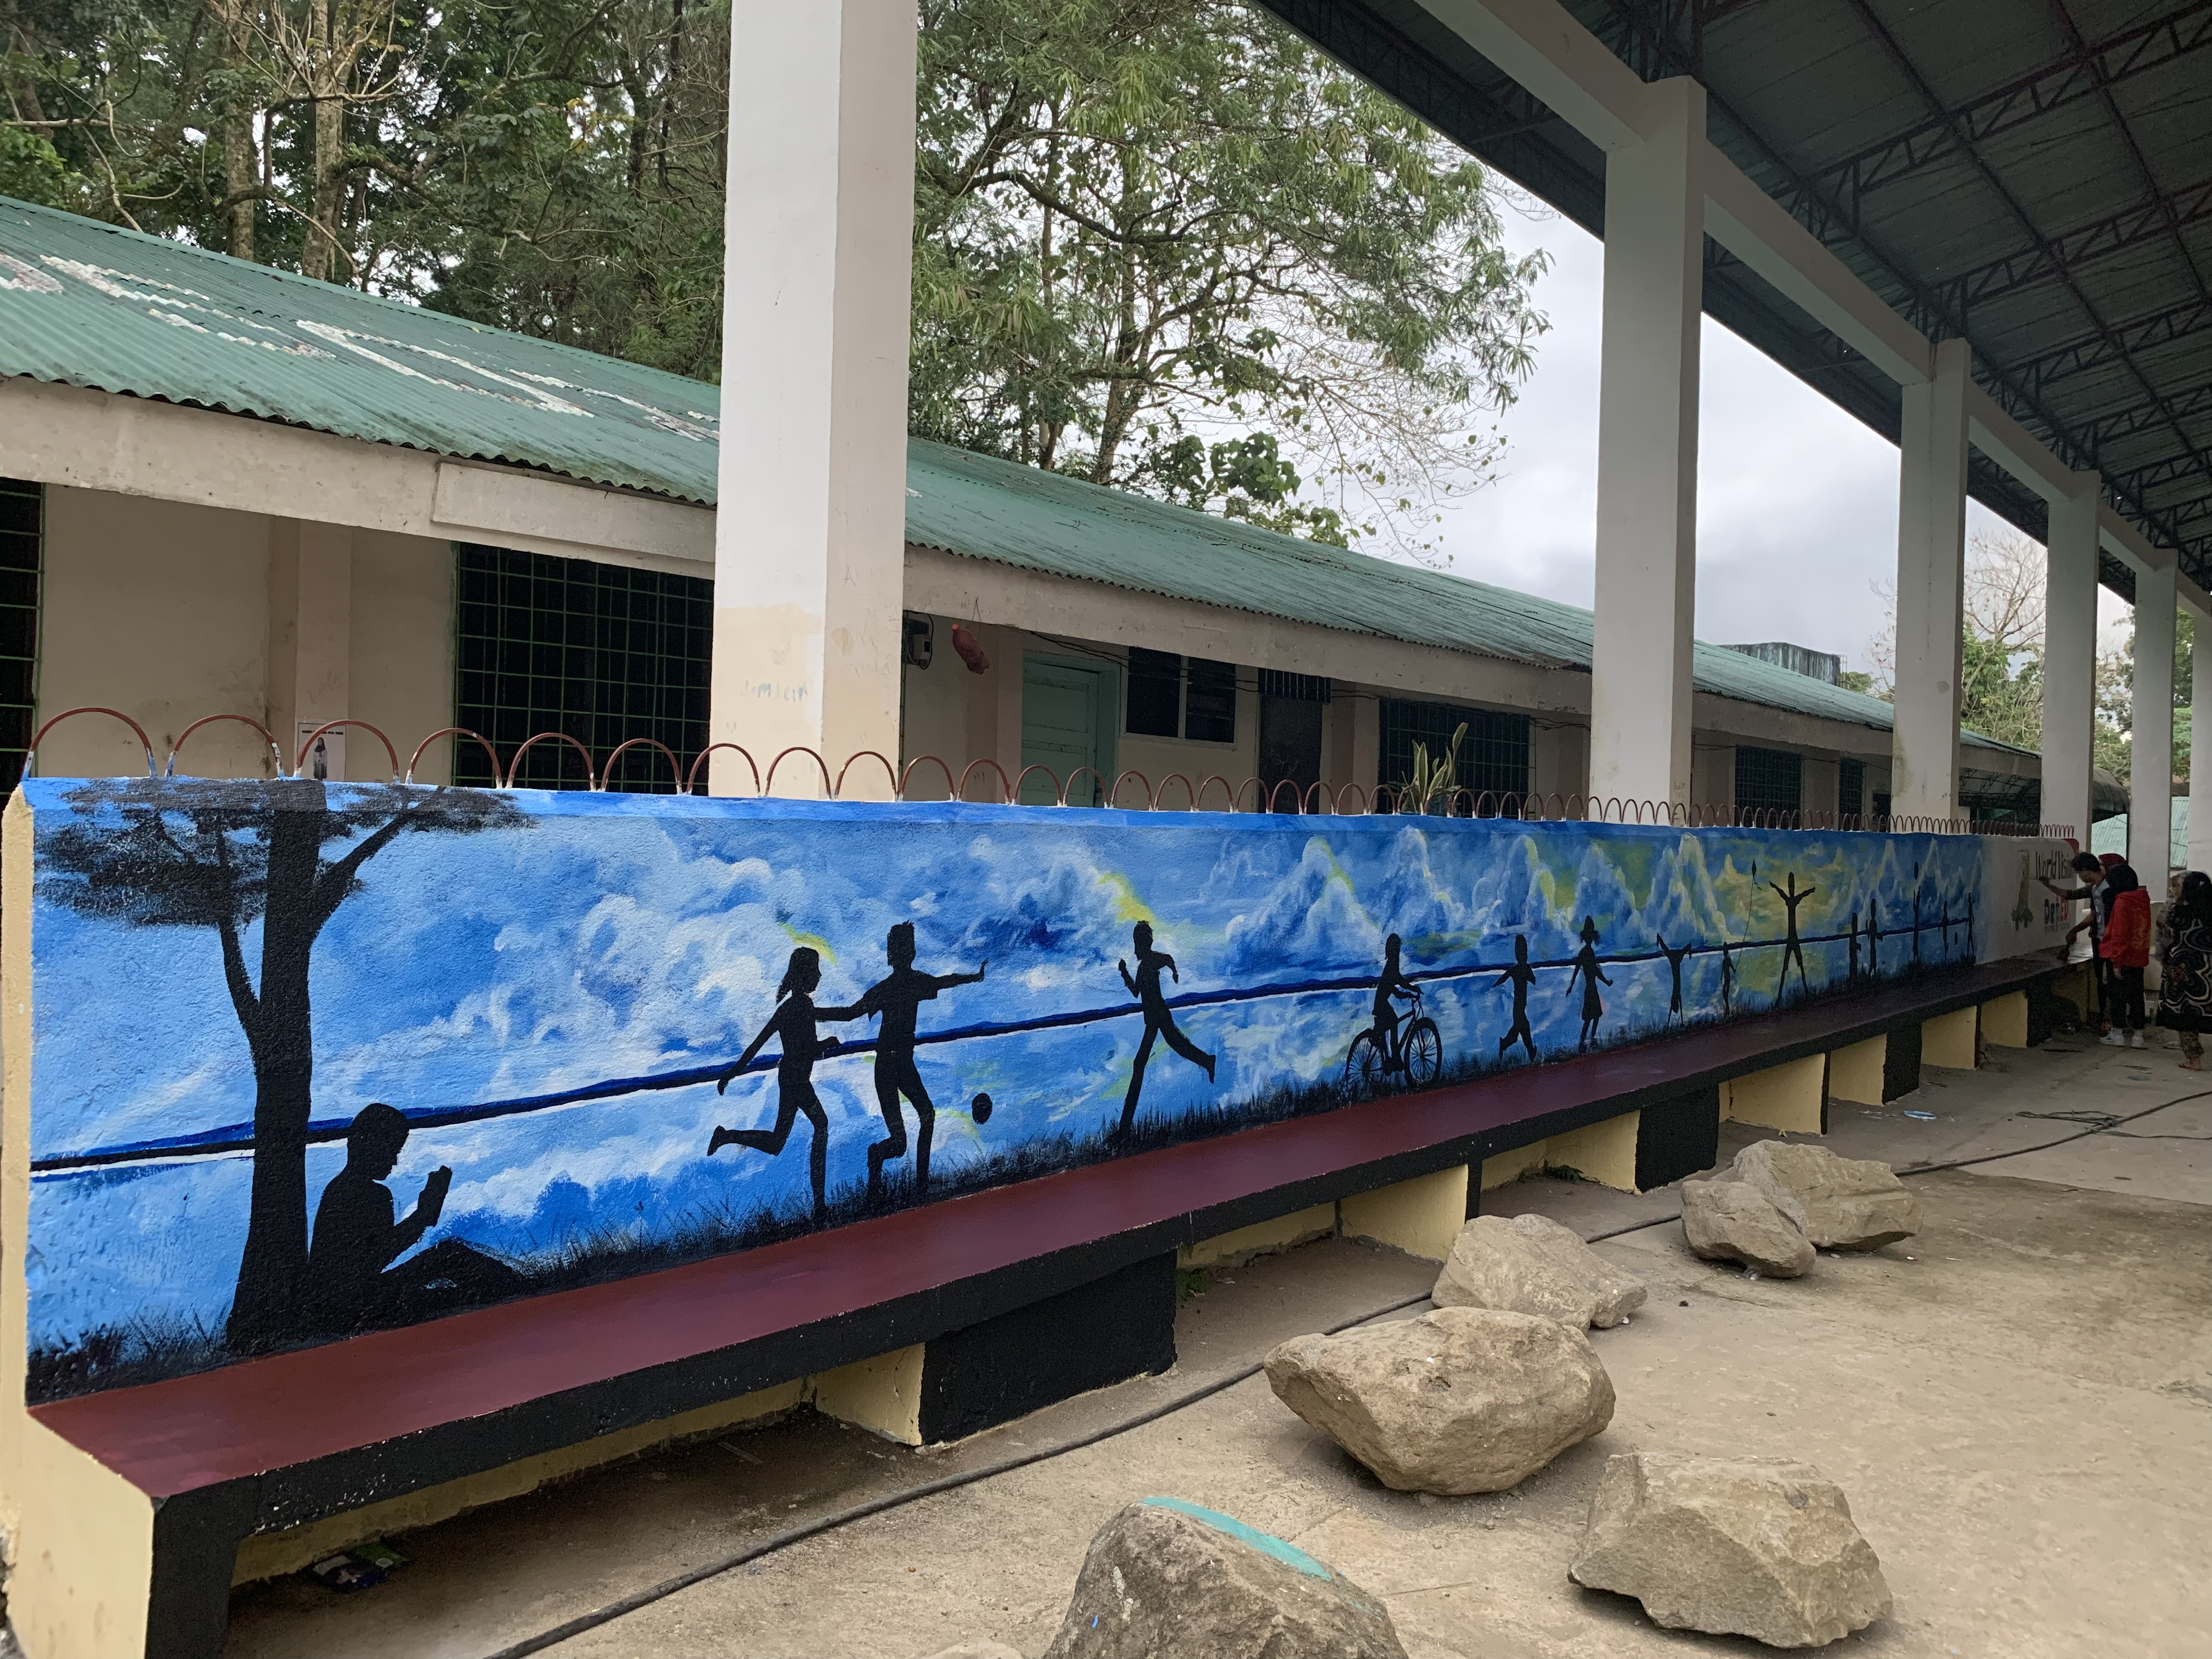 As part of World Vision's goal to promote child safety and peace, playgrounds and mural benches are set up in Marawi City.